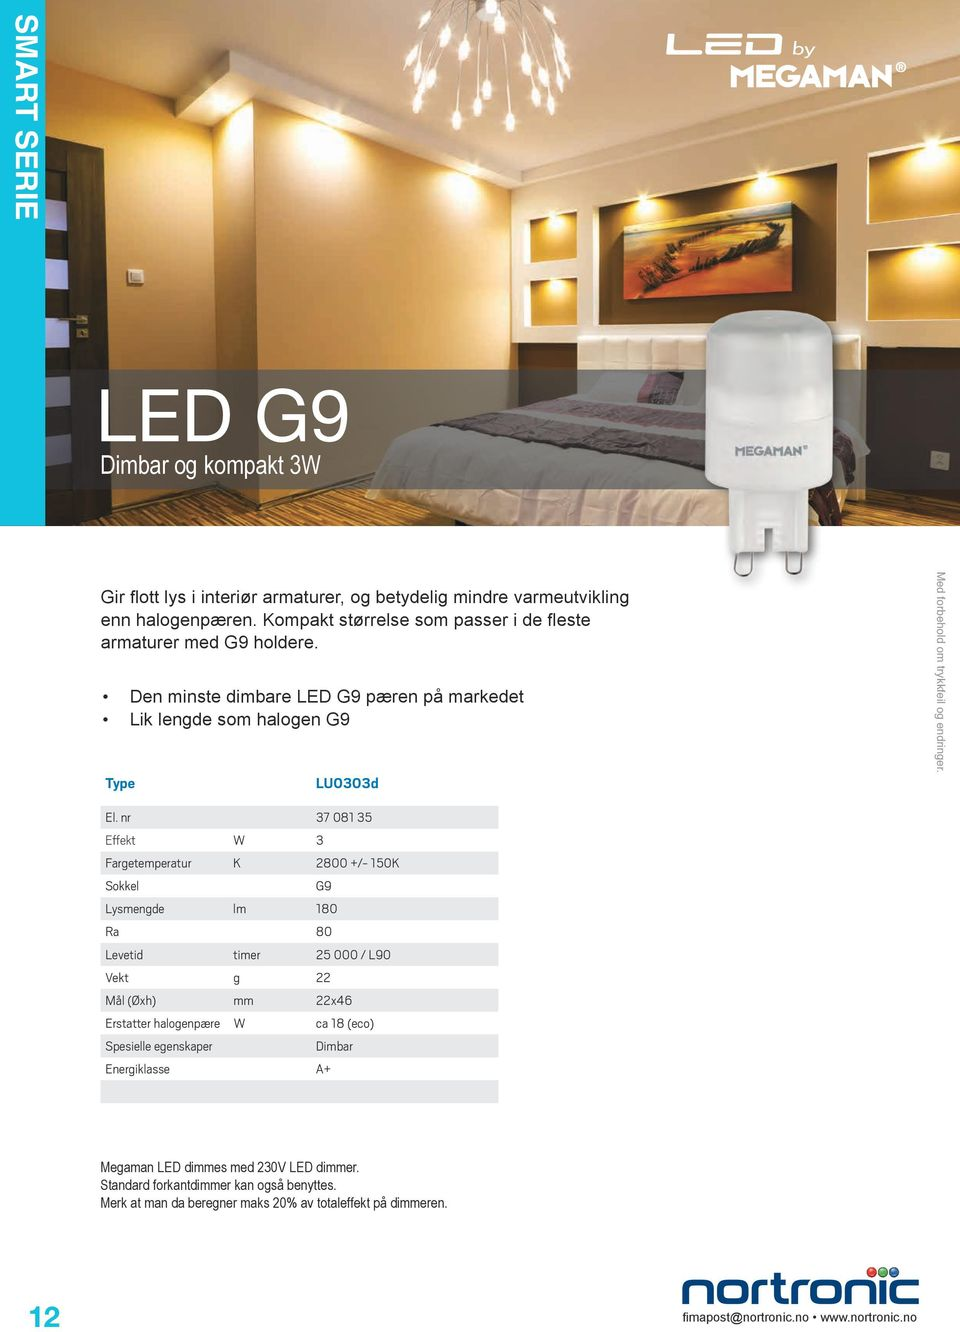 nr 37 081 35 Powerful light output, perfect alternative to the halogen G4 Effekt W 3 Fargetemperatur K Sokkel 2800 +/- 150K G9 The delicate profile of the MEGAMAN LED G4 is designed to fit into